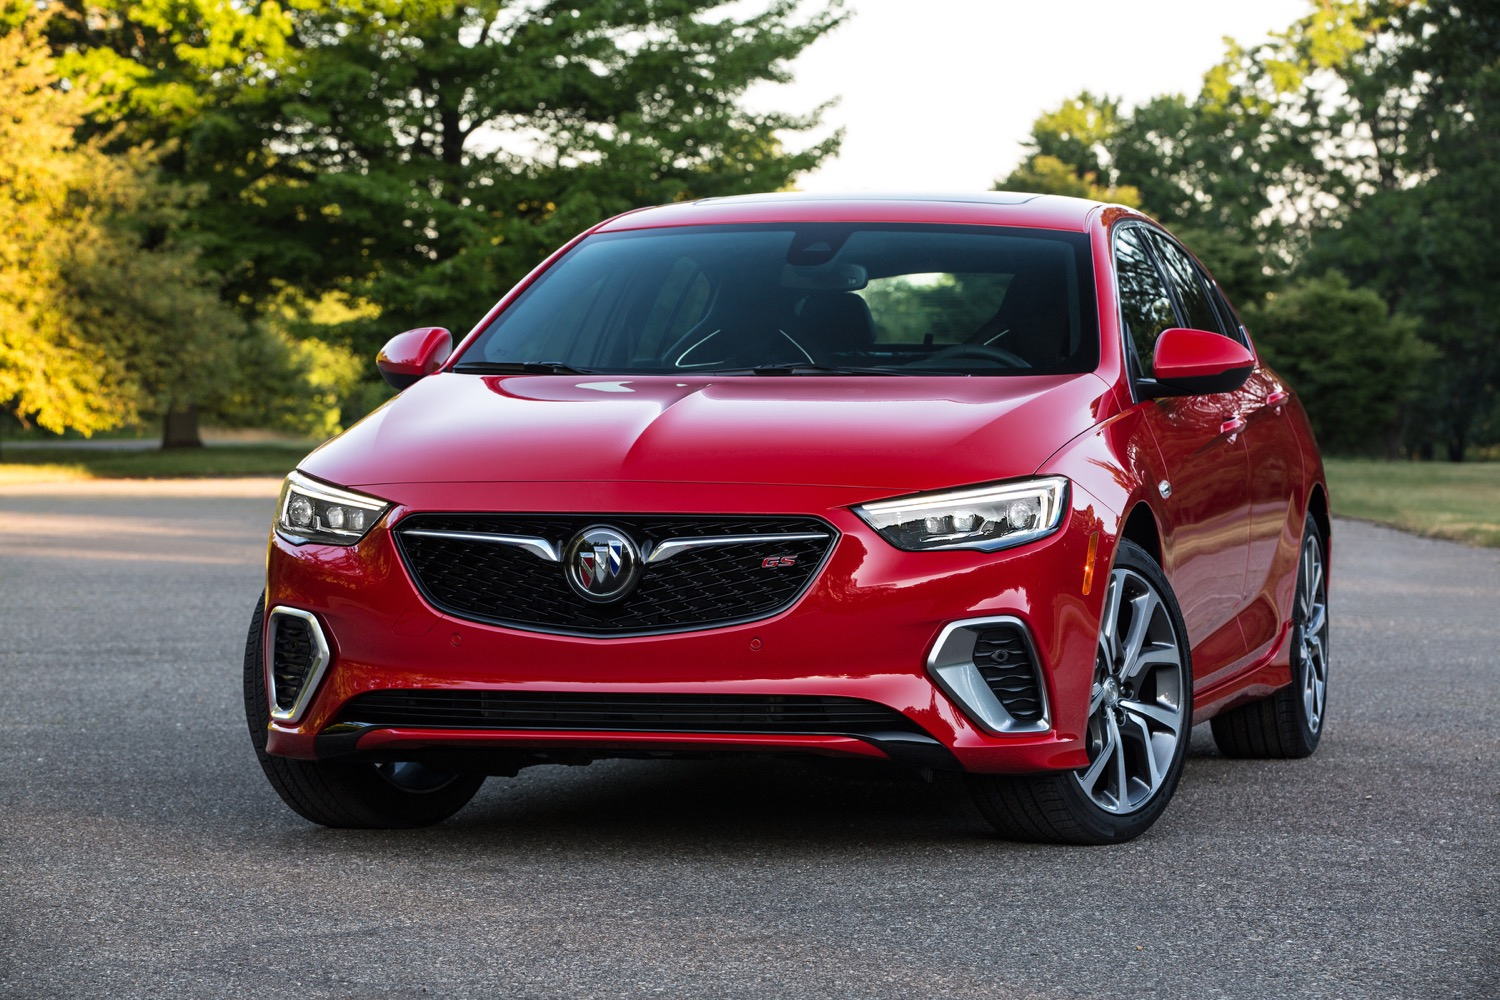 We Have Some Beef With This 2018 Buick Regal Gs Review | Gm New 2022 Buick Regal Msrp, Models, Manual